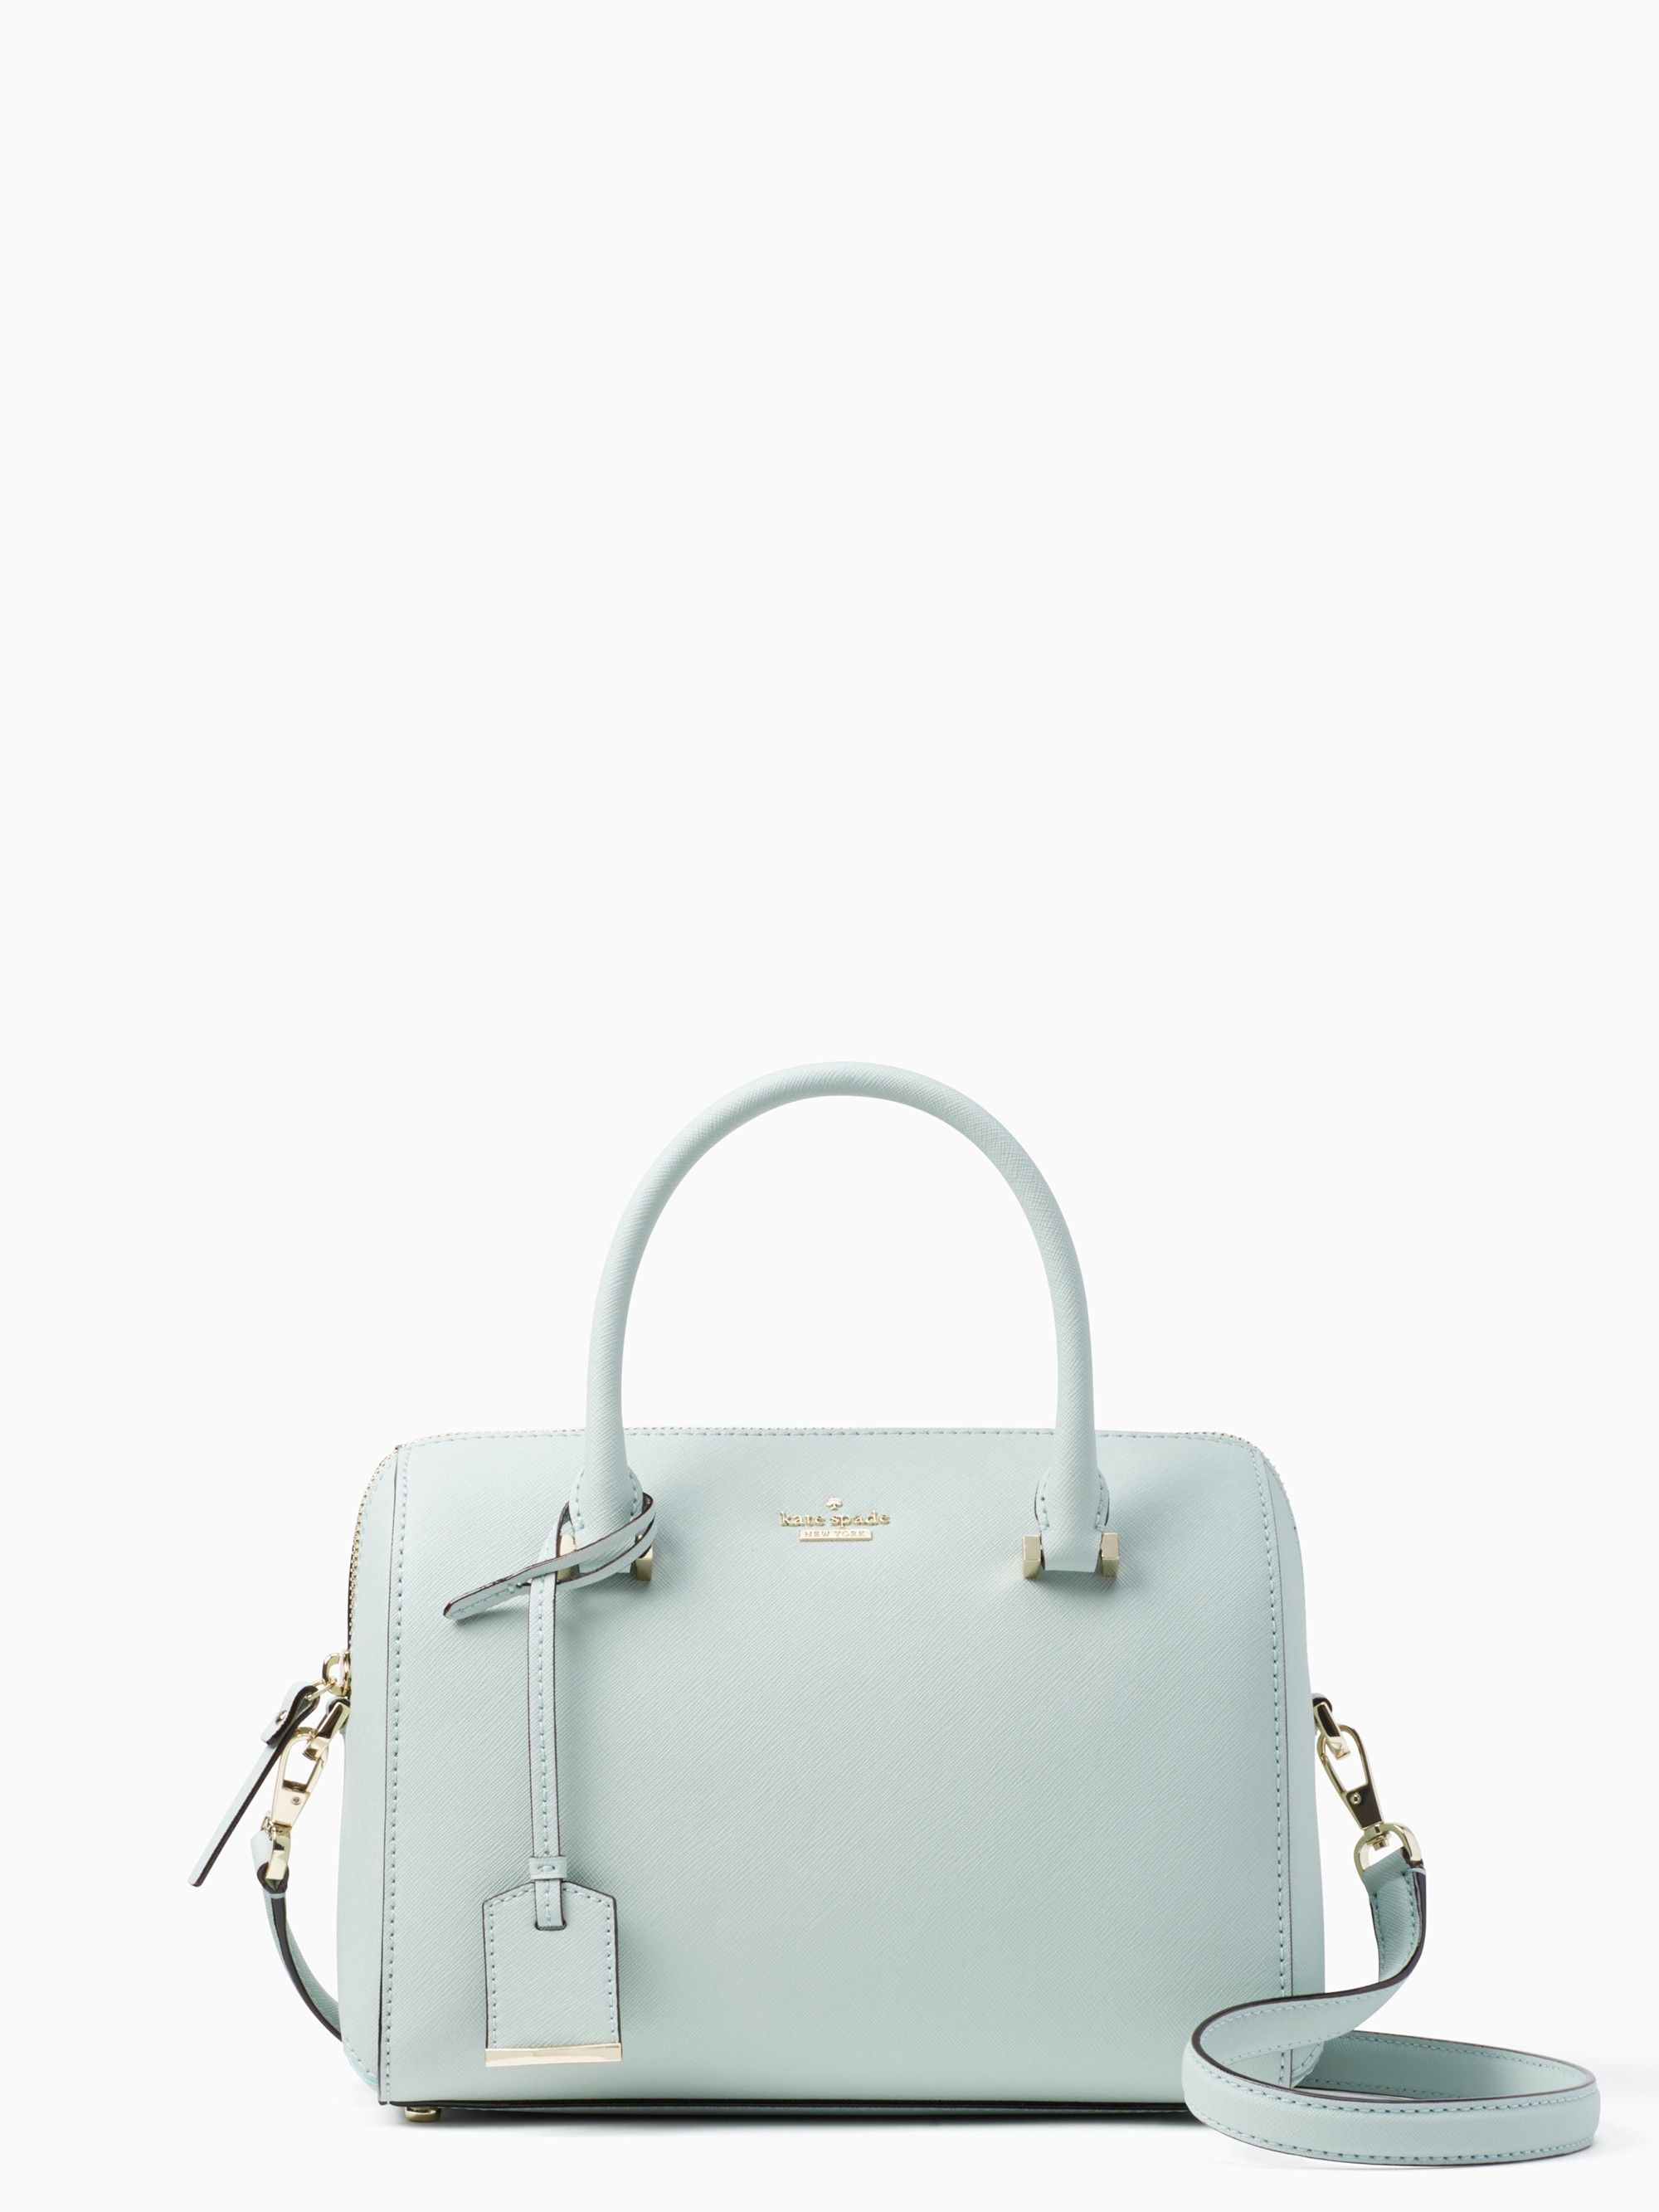 b407bc58c5 Kate Spade Cameron Street Large Lane Satchel Crossbody Misty Mint